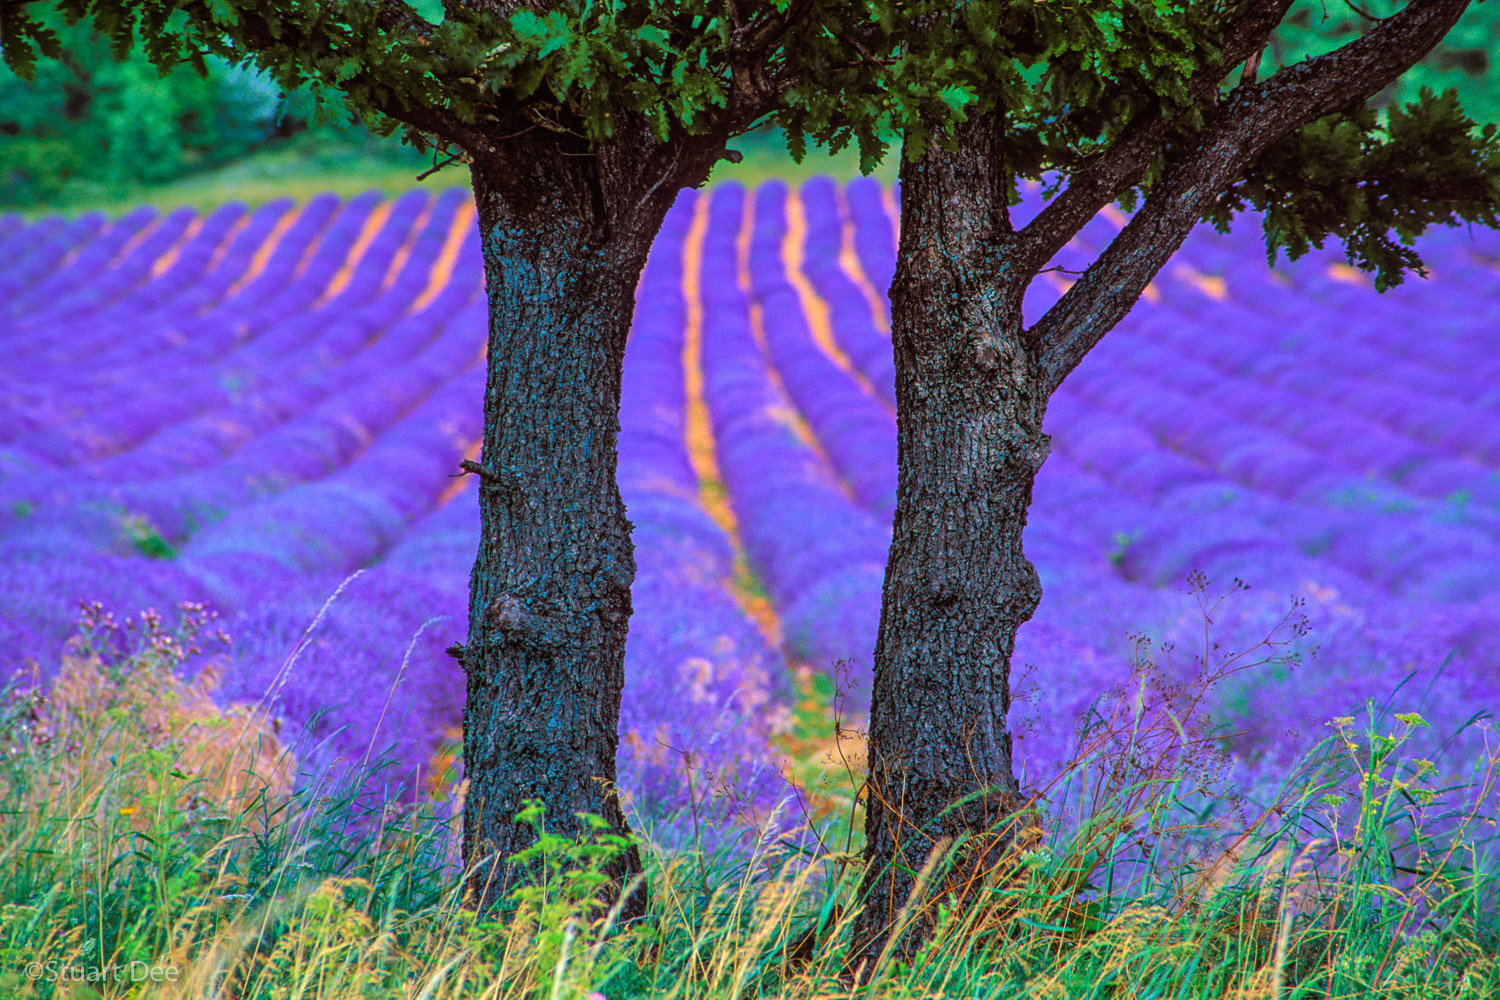 Trees and lavender fields, Provence, France